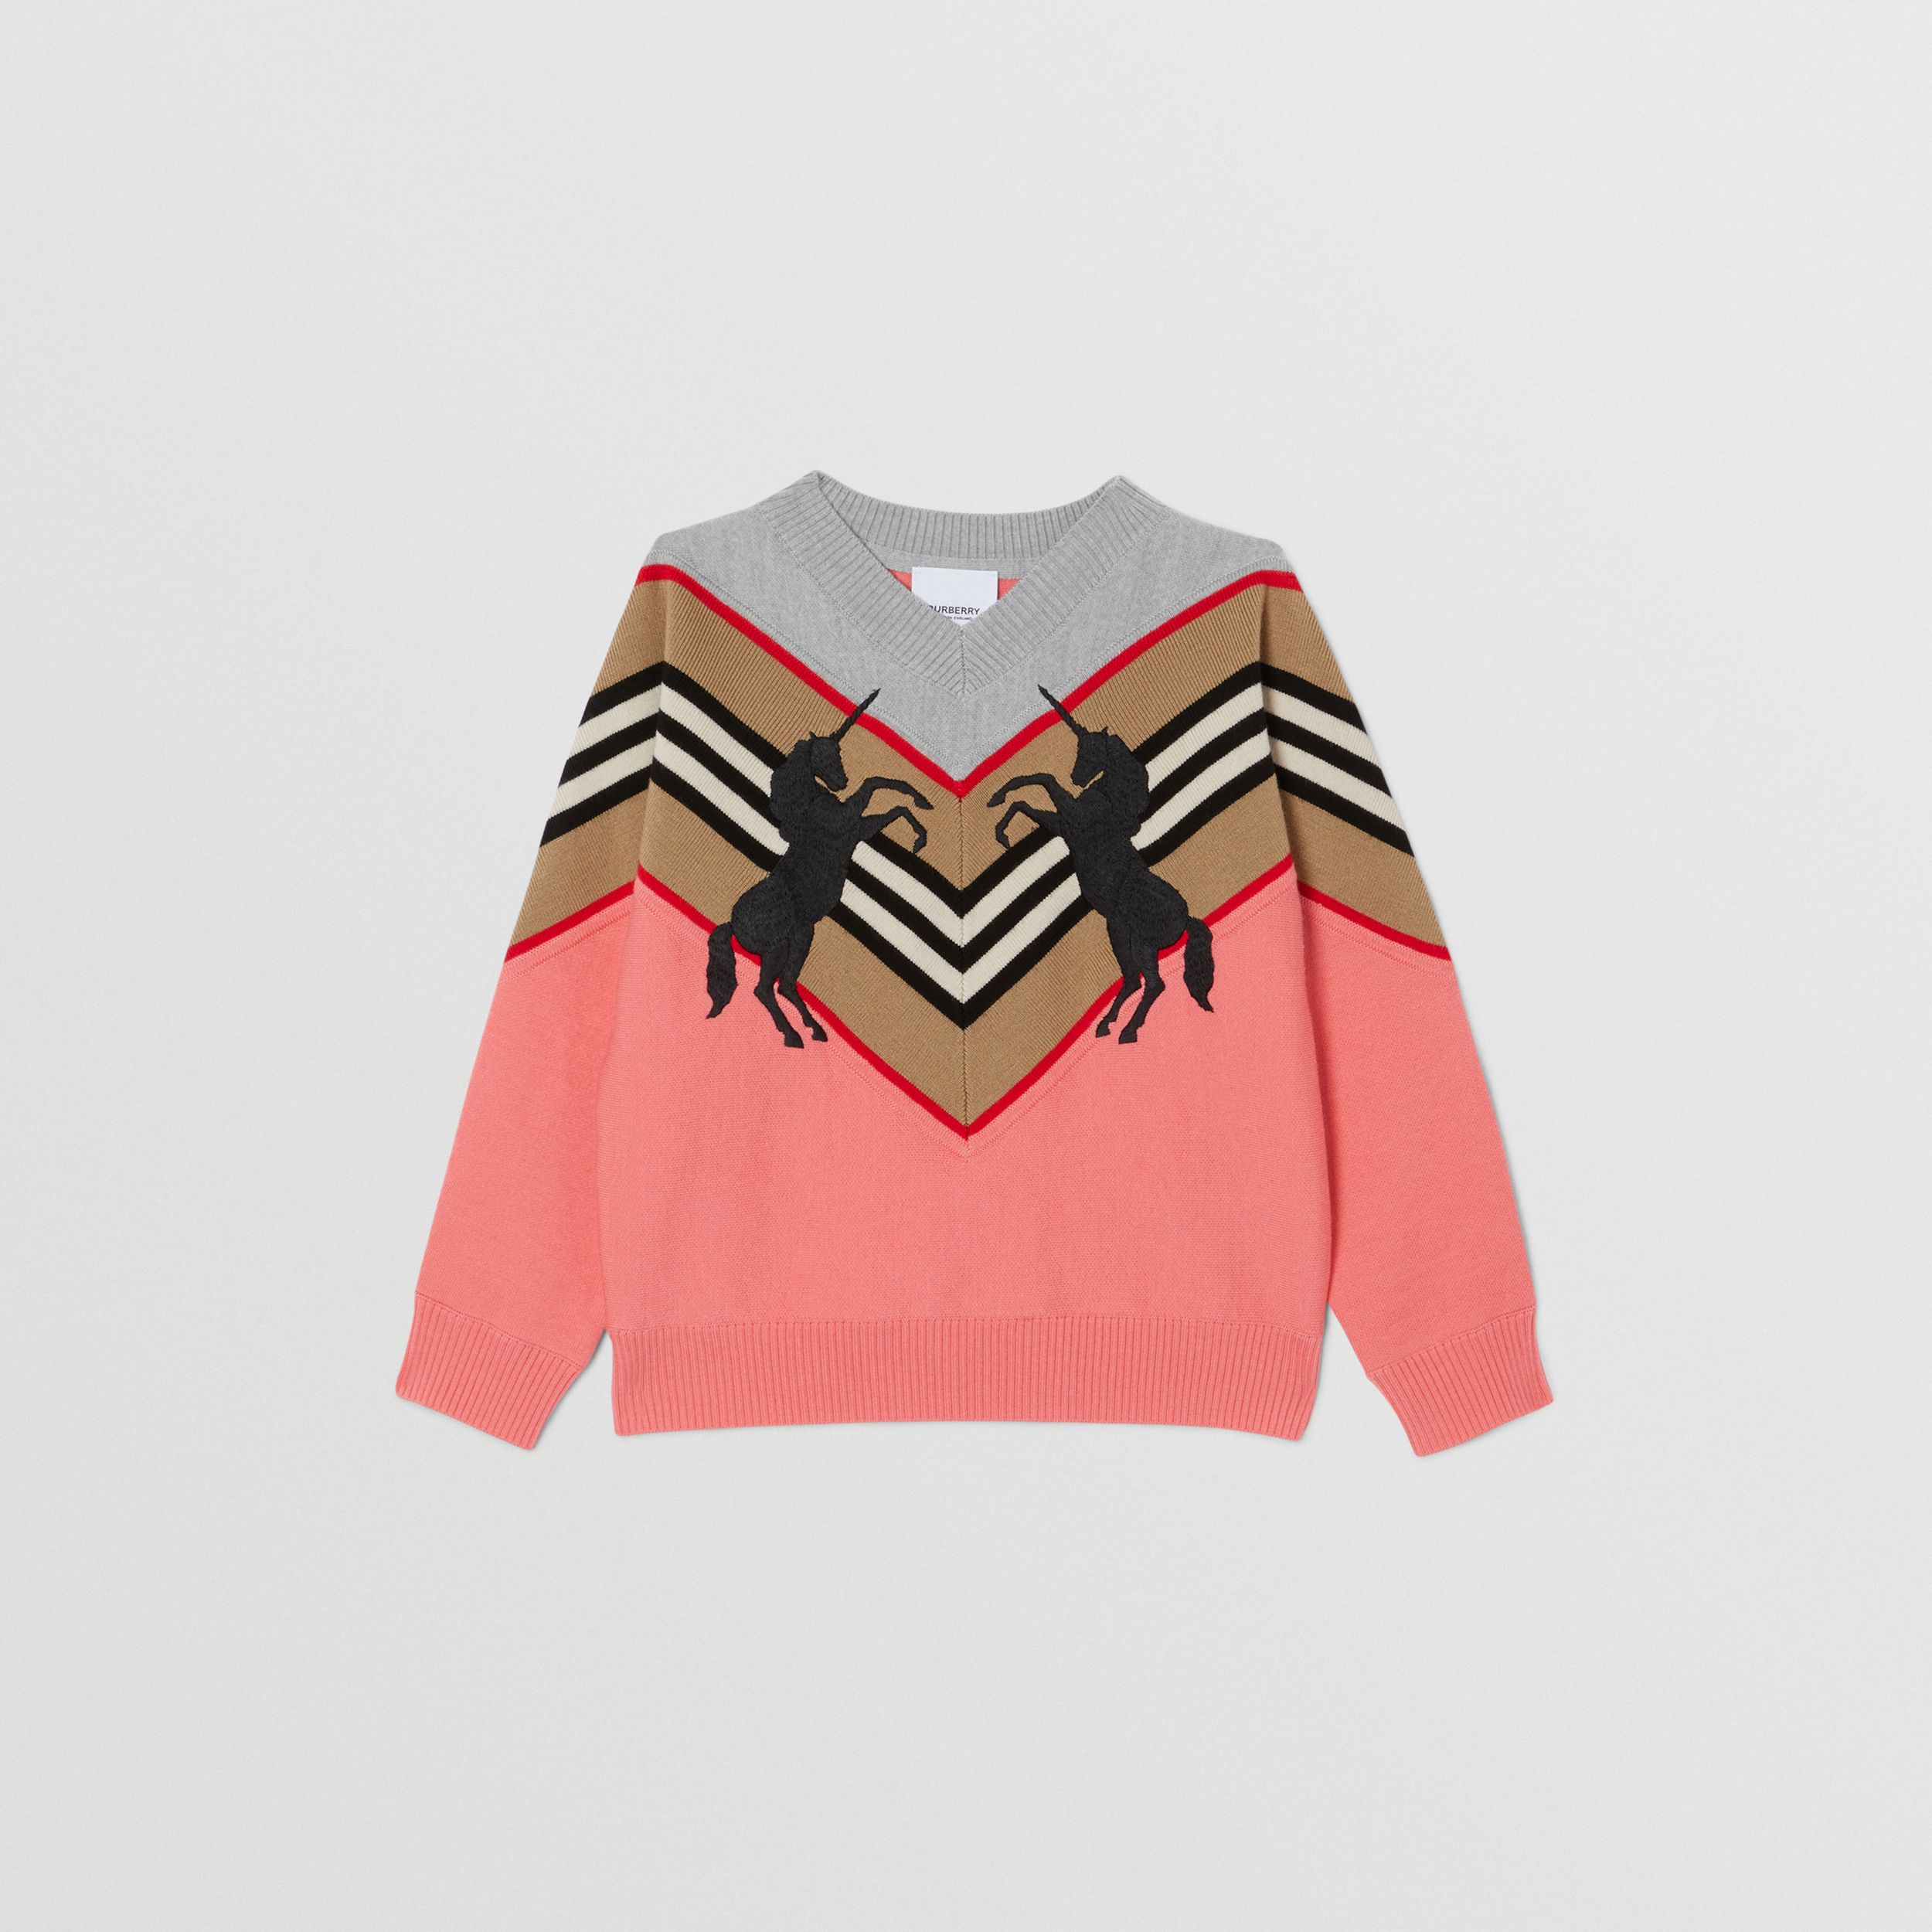 Unicorn Embroidered Technical Wool Sweater in Peach | Burberry - 1